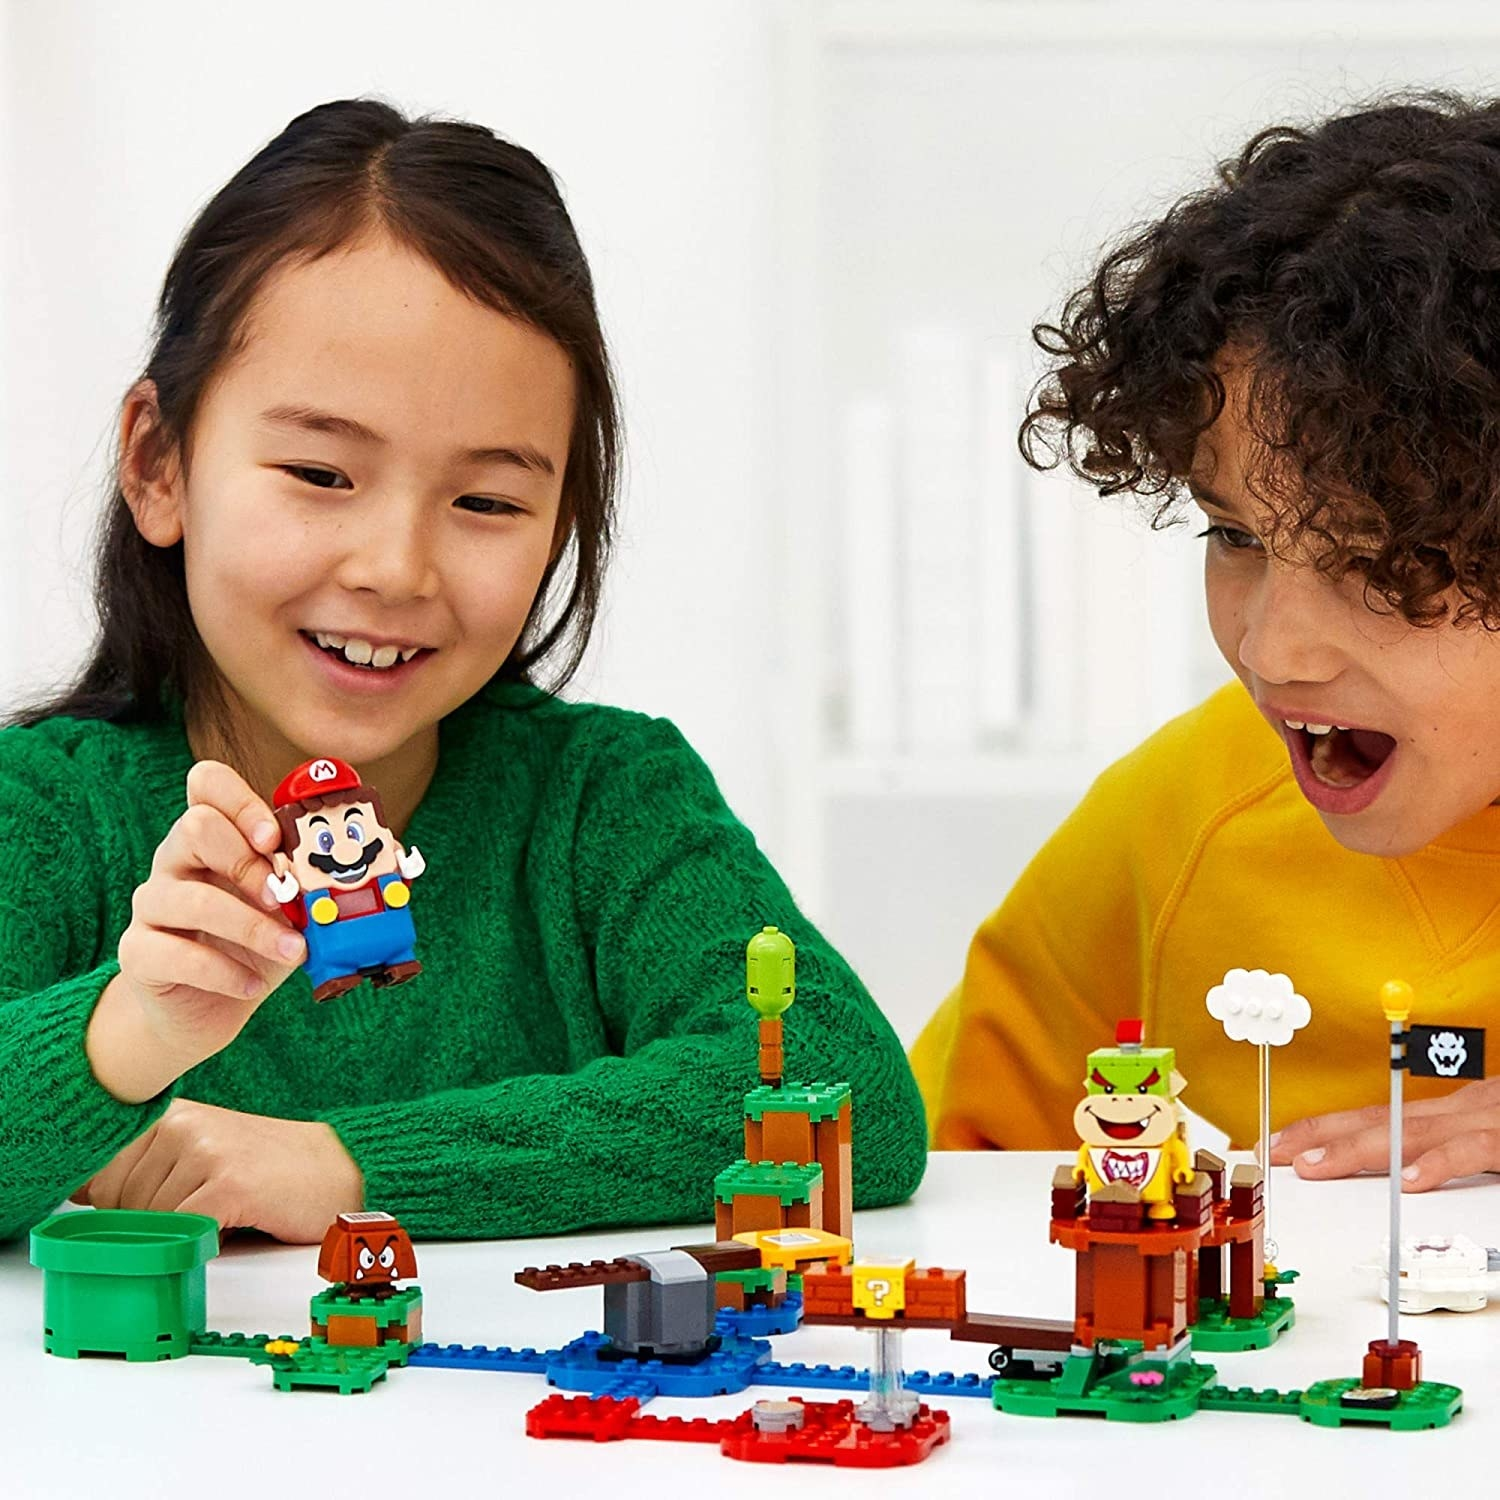 Two children playing with the Super Mario Lego set